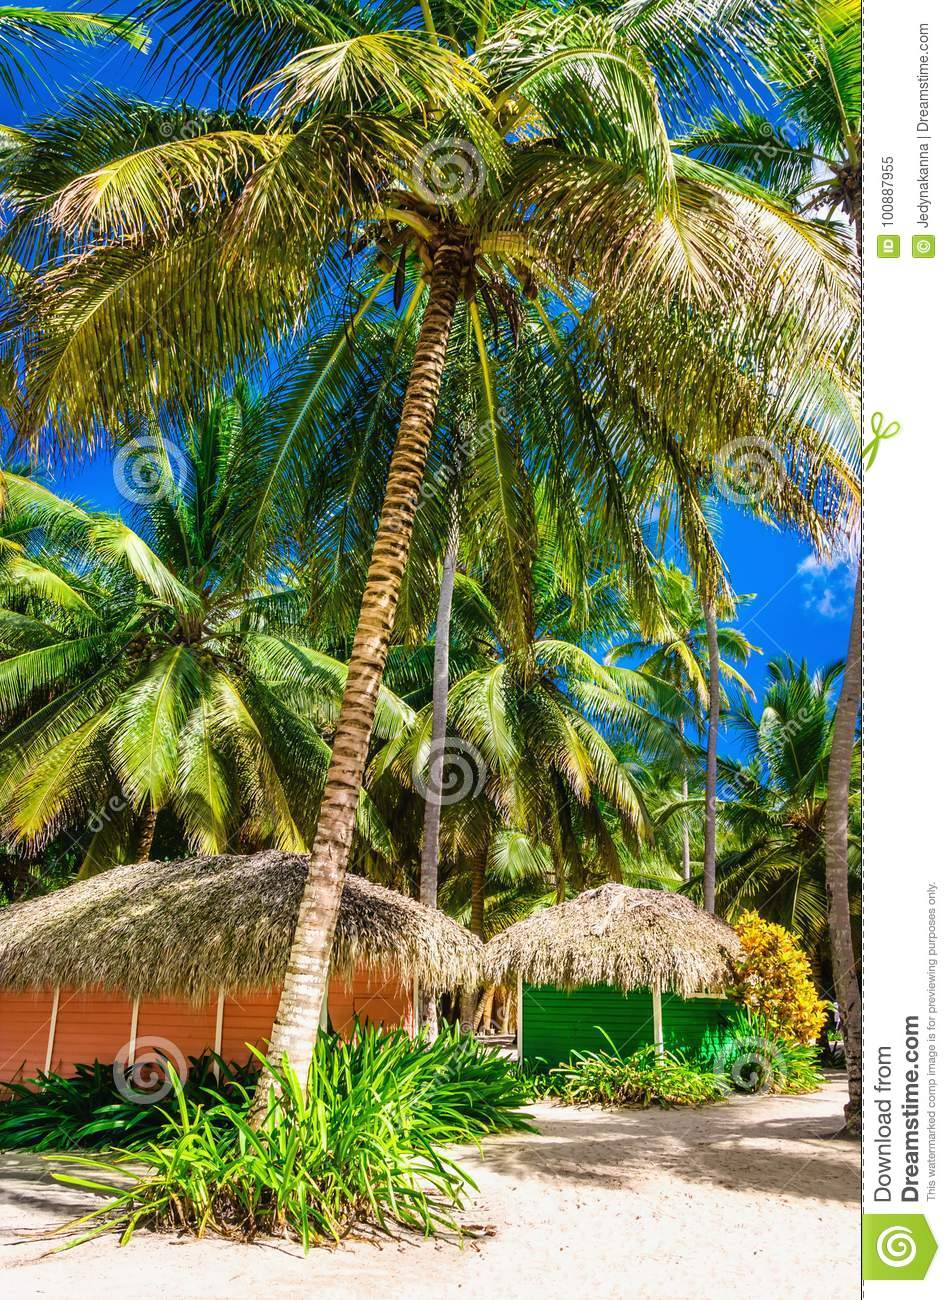 Colorful Wooden Huts Hidden Among The Tall Palm Trees Dominican ...